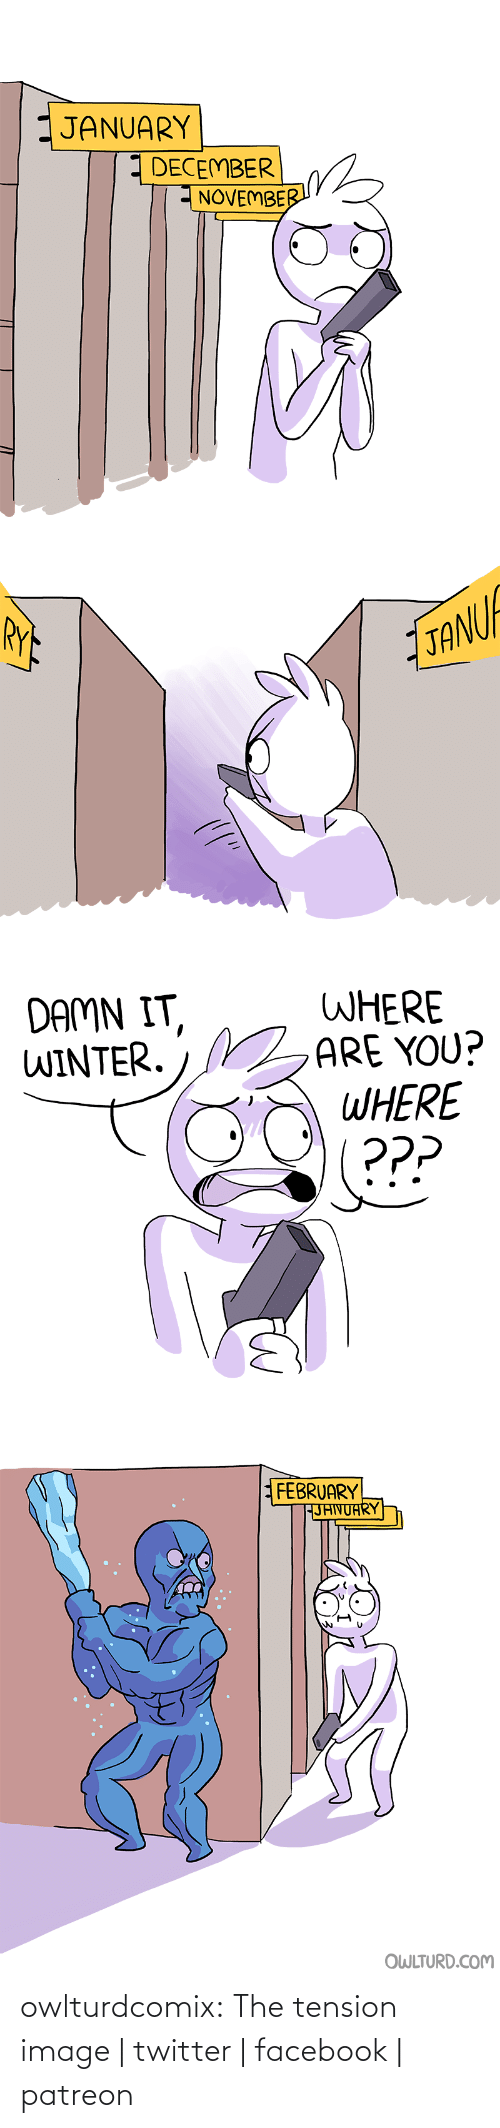 Shenanigansen: JANUARY  DECEMBER  NOVEMBER   RYE  TANUF   DAMN IT,  WINTER.  WHERE  ARE YOU?  WHERE  ???  (अुय   FEBRUARY  FJAIVUARY  OWLTURD.COM owlturdcomix:  The tension image | twitter | facebook | patreon